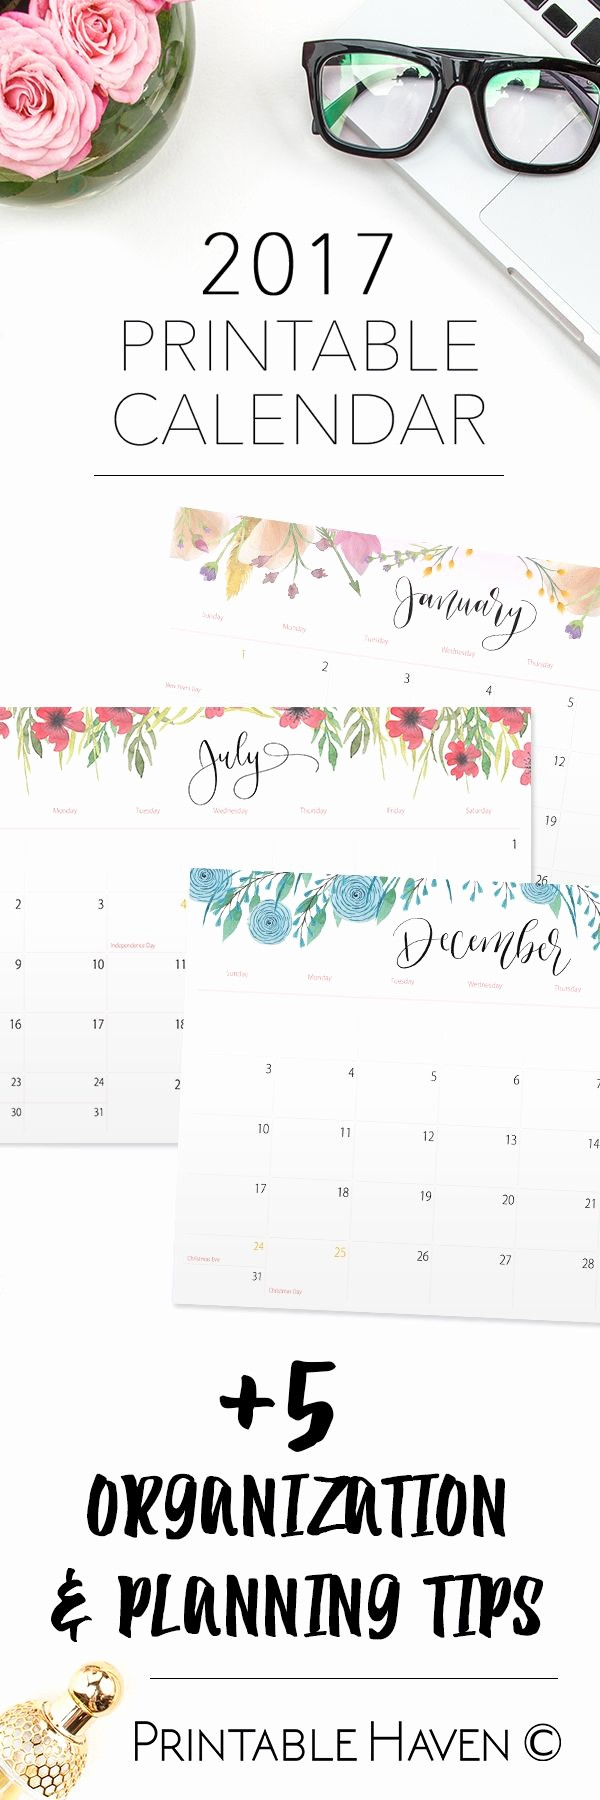 Free Printable Annual Calendar 2017 Unique 25 Best Ideas About 2017 Calendar Printable On Pinterest